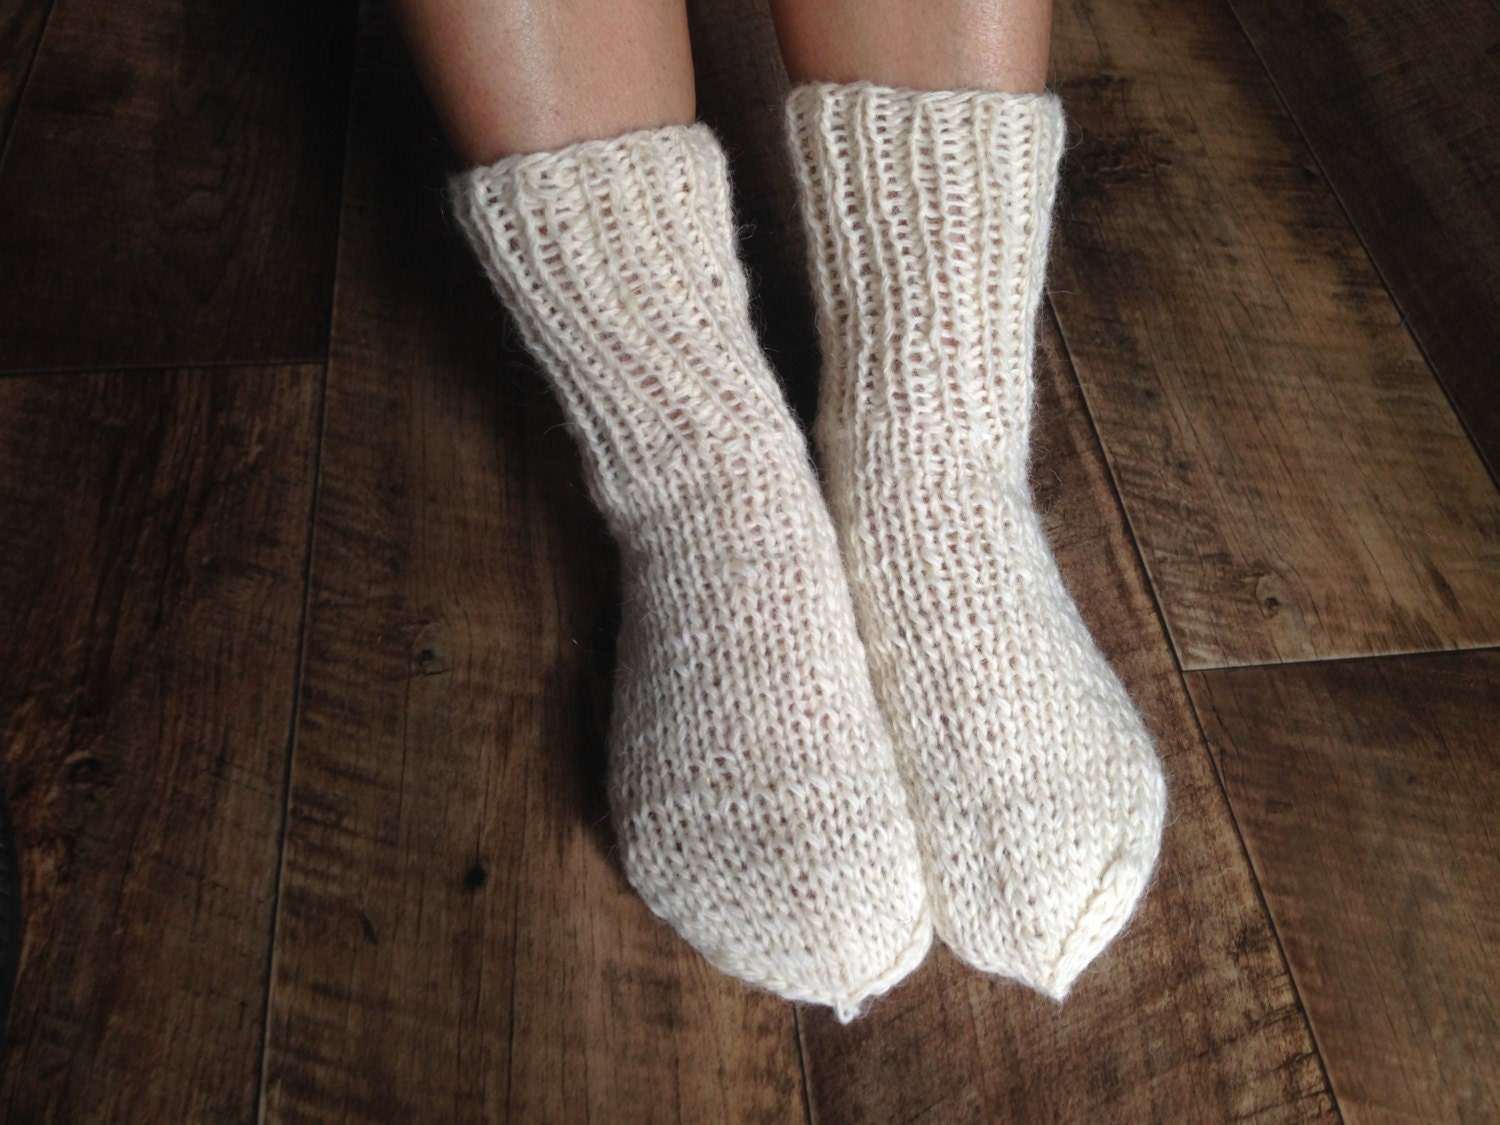 Shop a wide selection of Merino Wool Socks including the top brand names you trust at competitive prices.